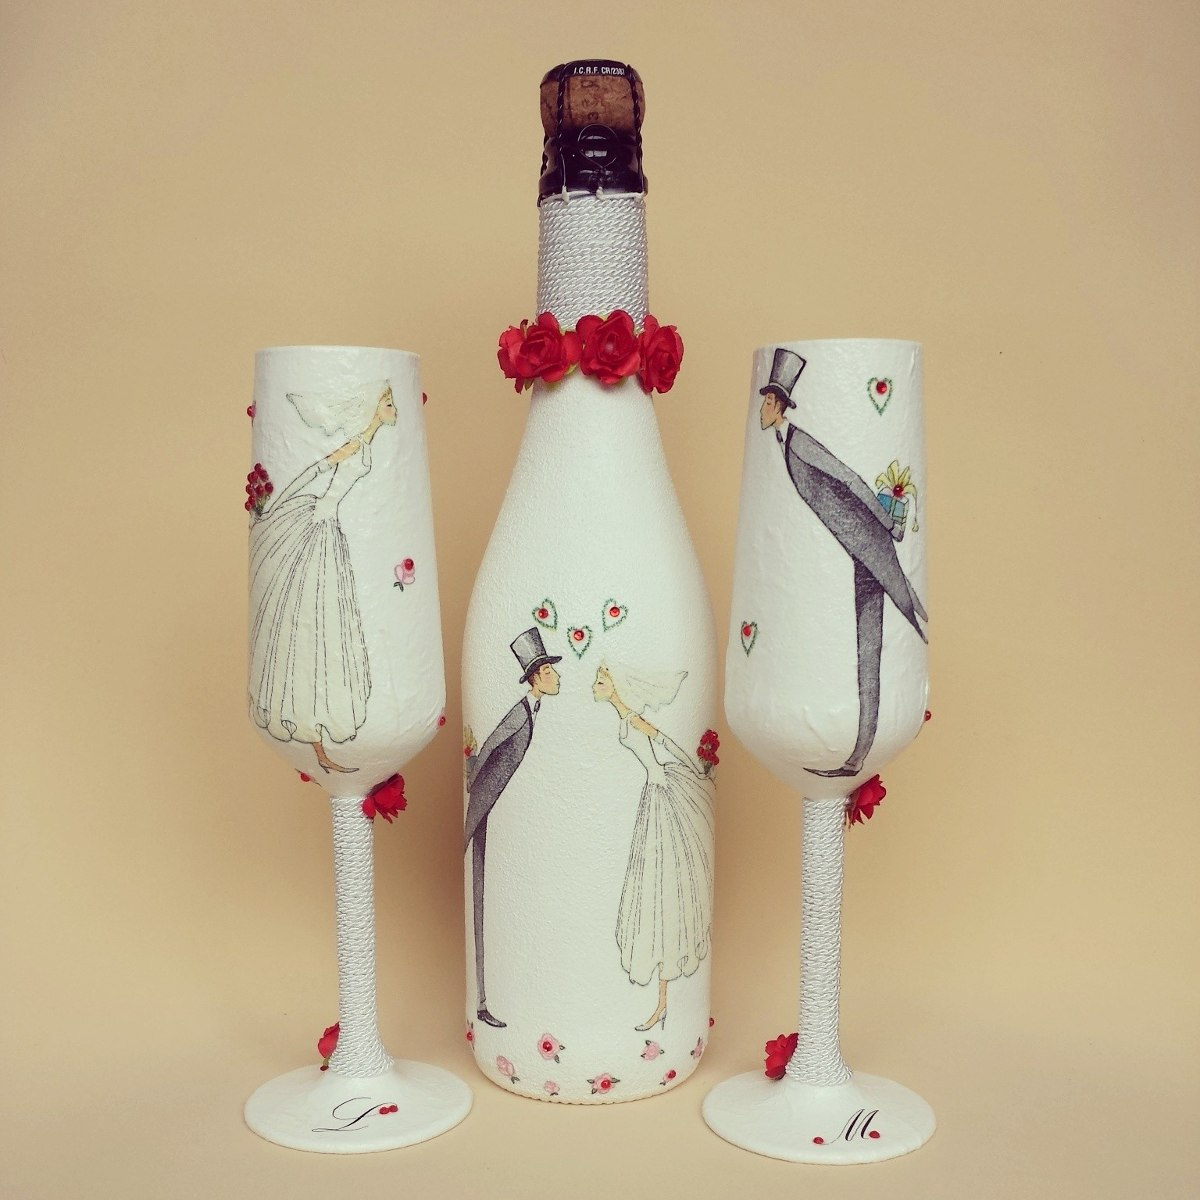 Botellas Decoradas Para 15 Copas Y Botella Para Boda Myweddingglasses 3 200 00